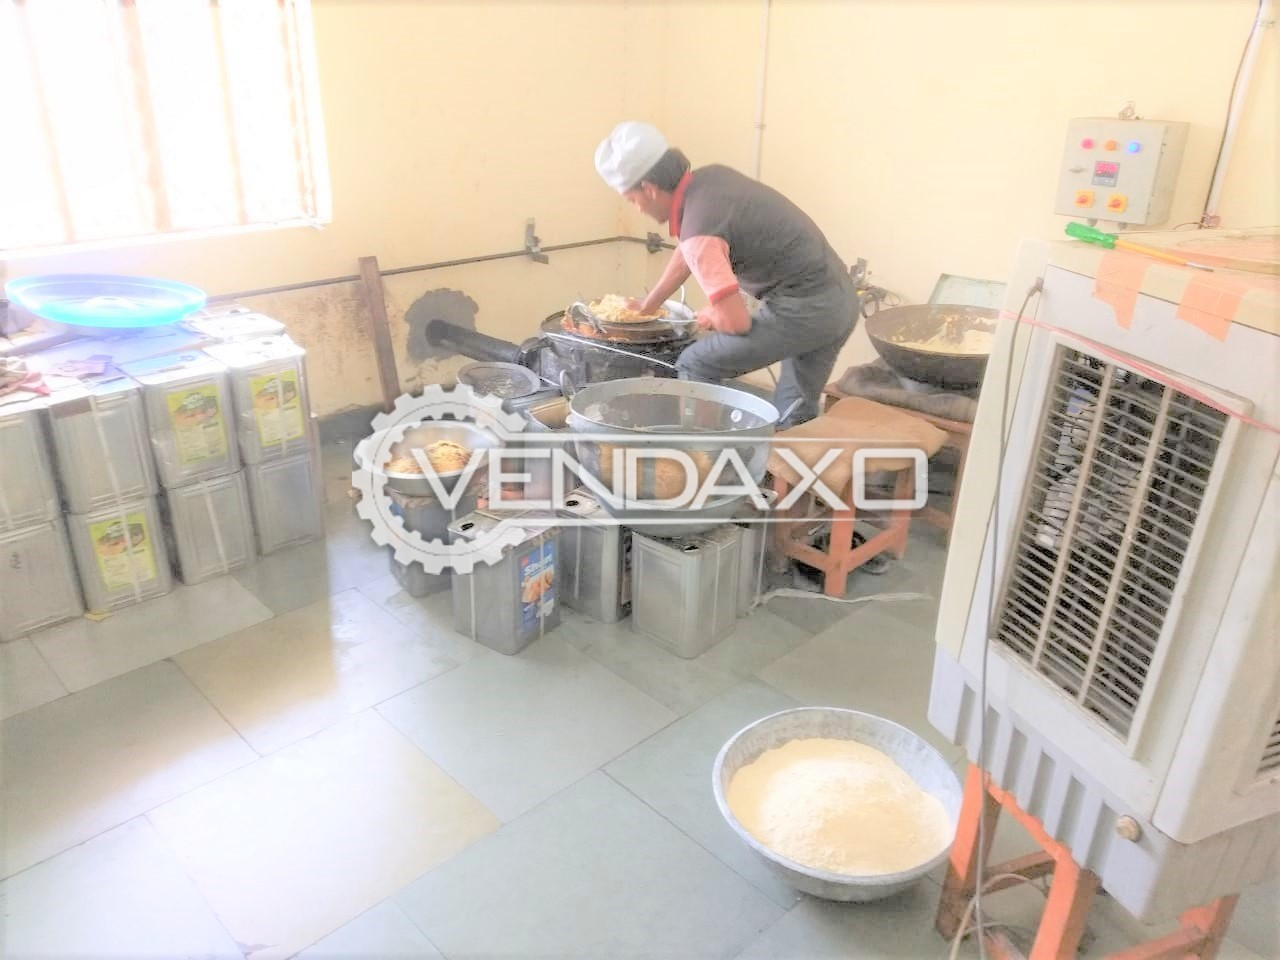 For Sale Used Namkeen & Chips Manufacturing and Packaging Plant